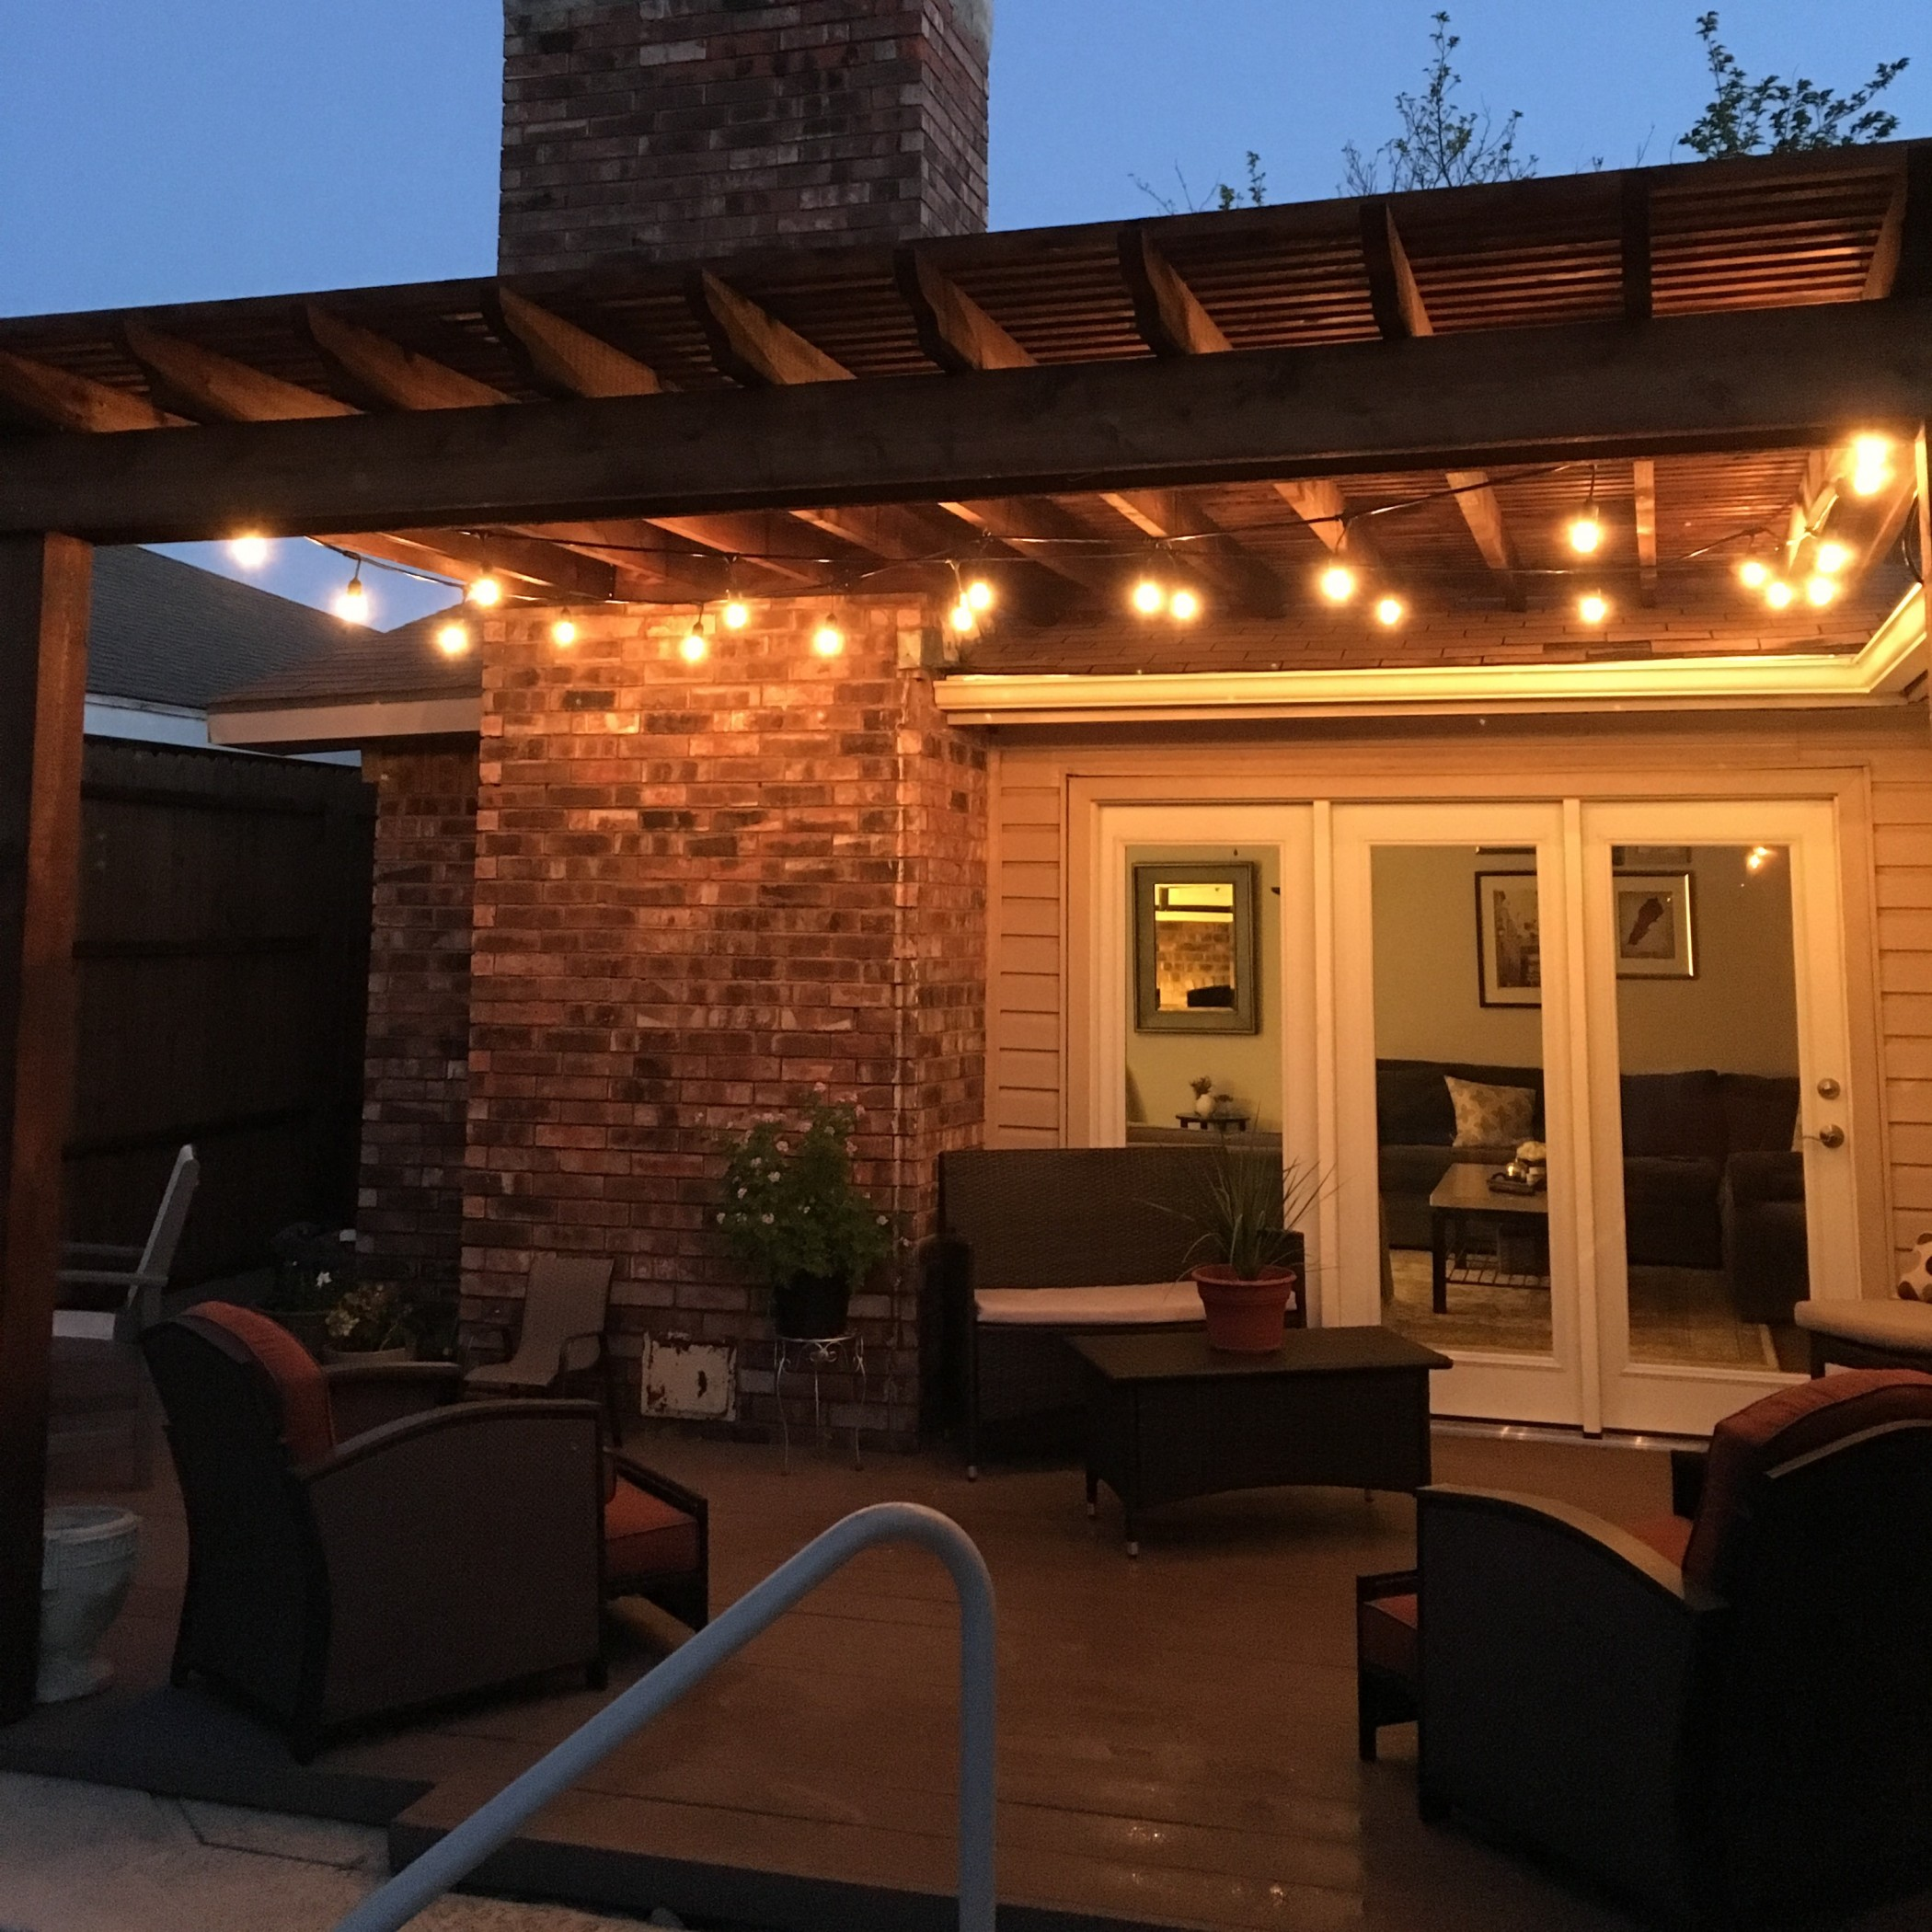 Dars Porch And Patio Hours: Lifetime Outdoor